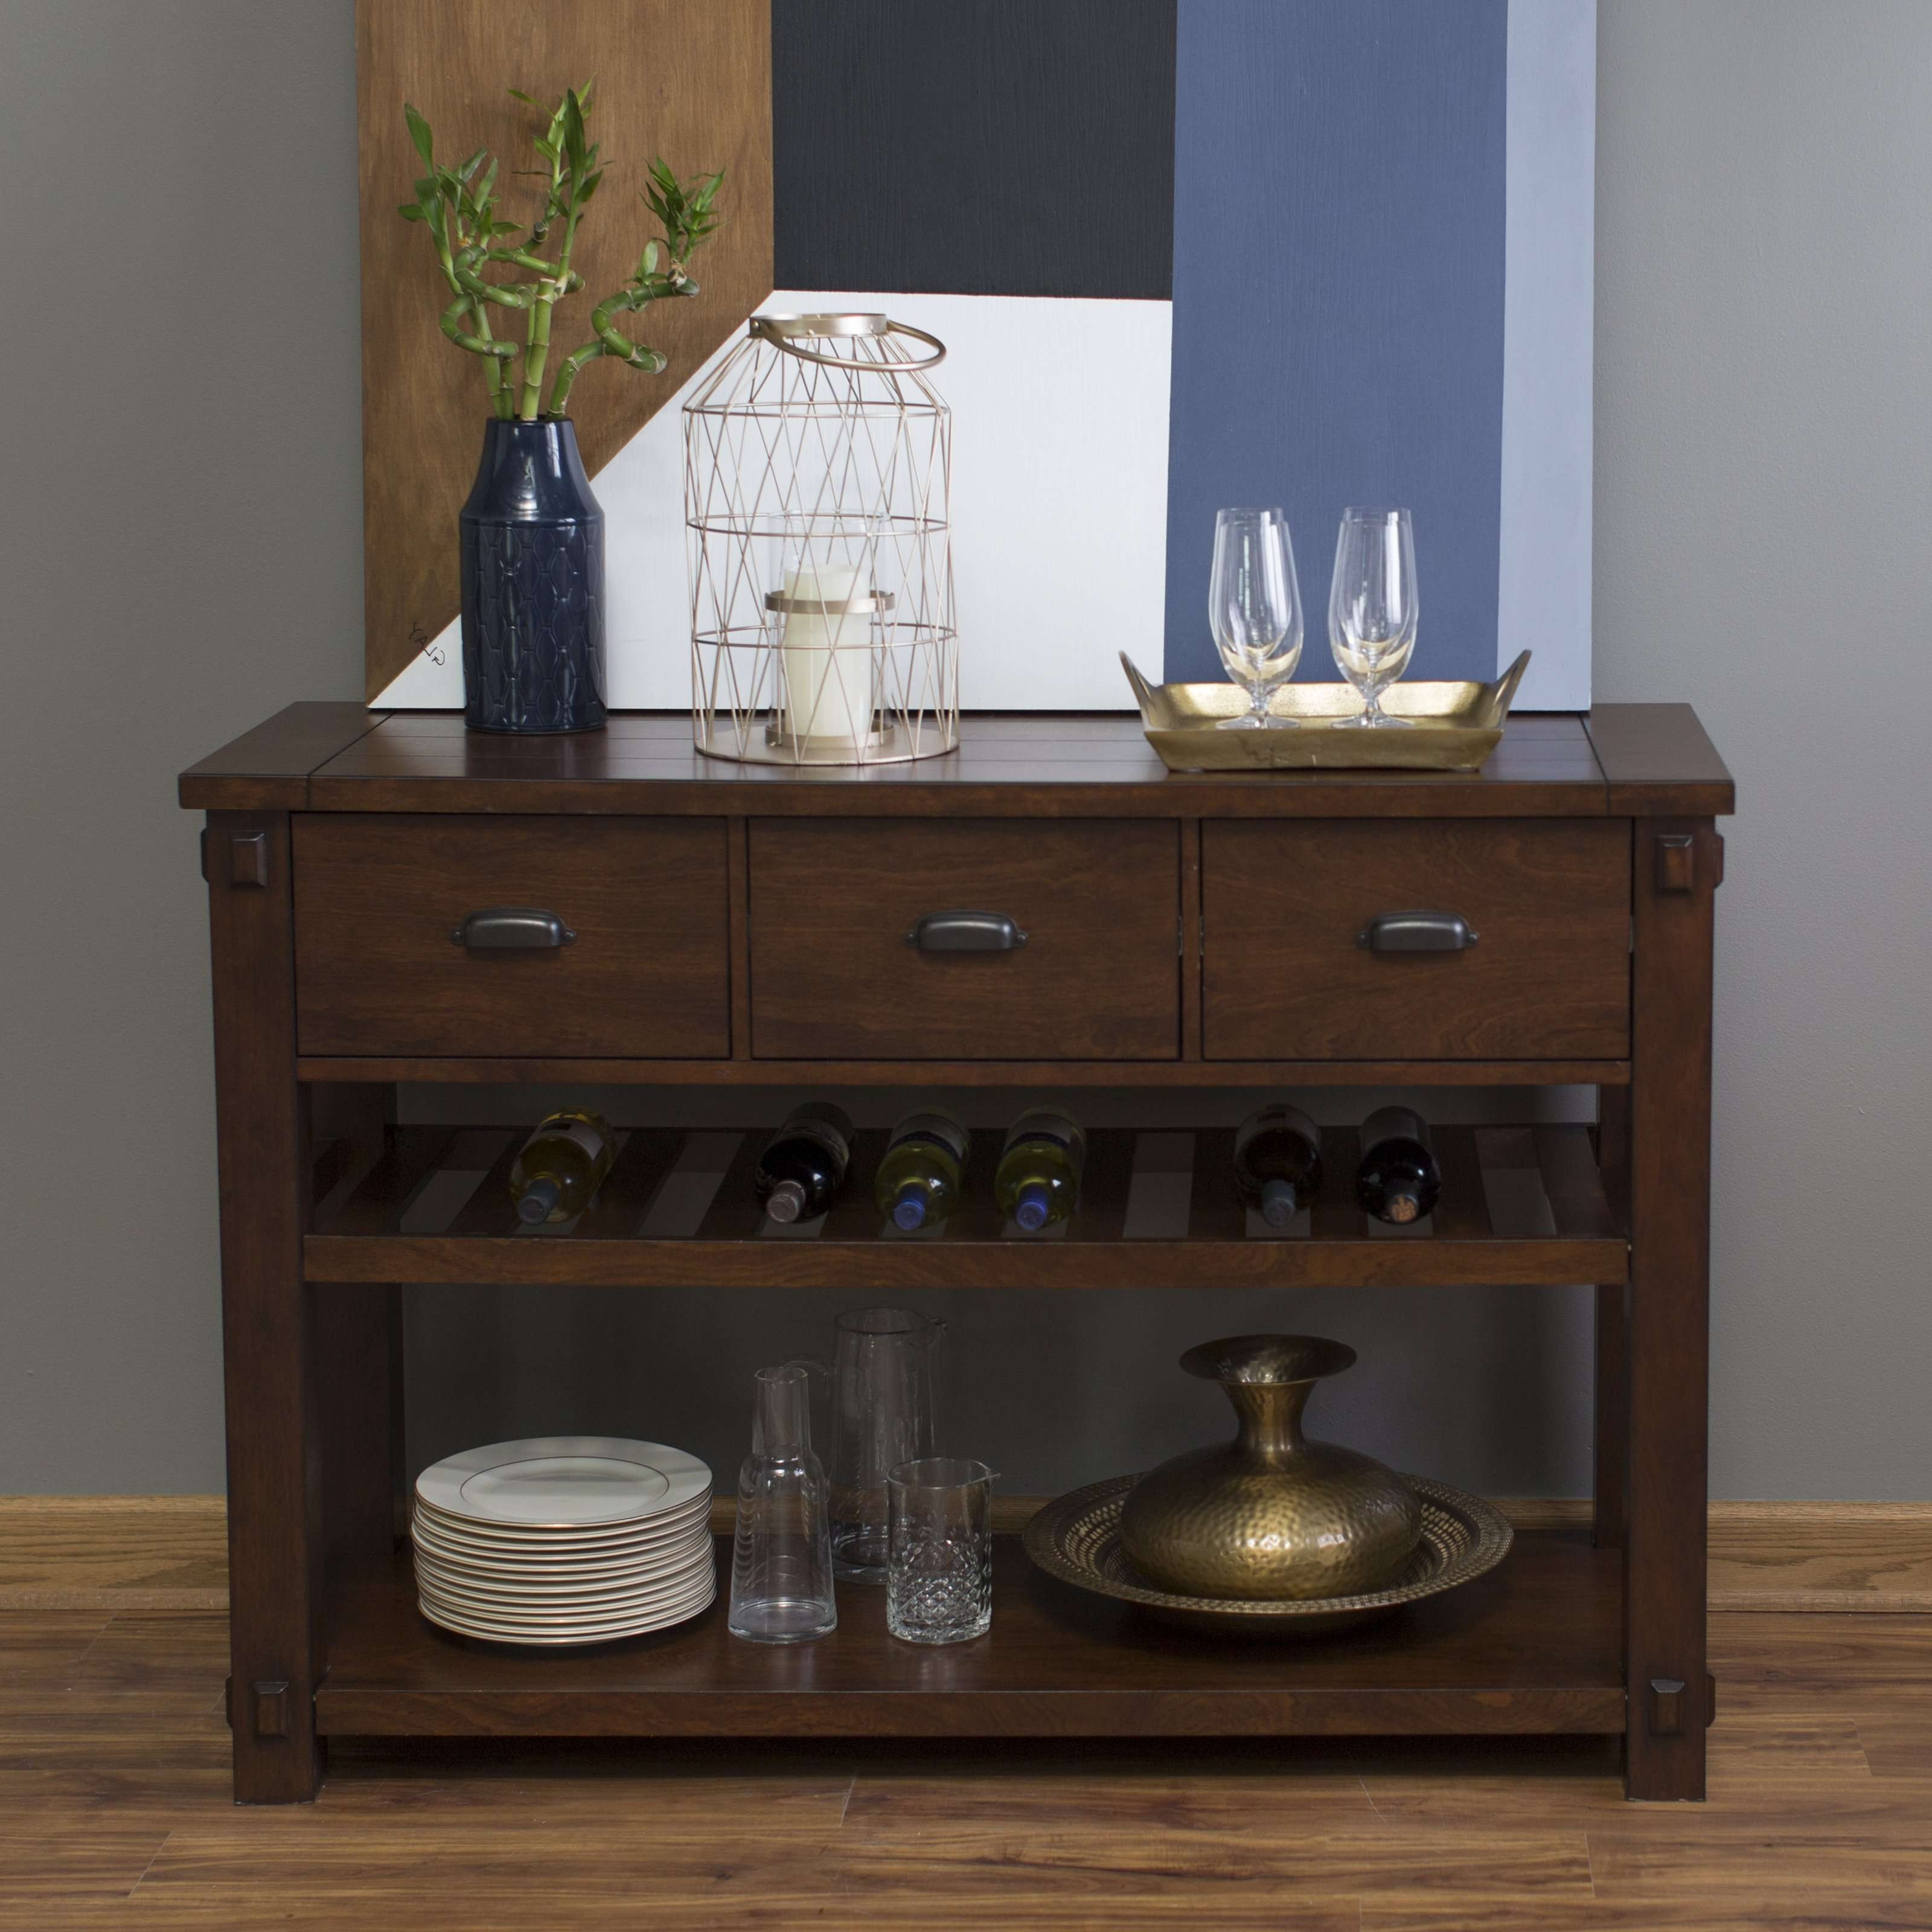 Sideboards & Buffets | Hayneedle Intended For Furniture Sideboards (View 3 of 20)